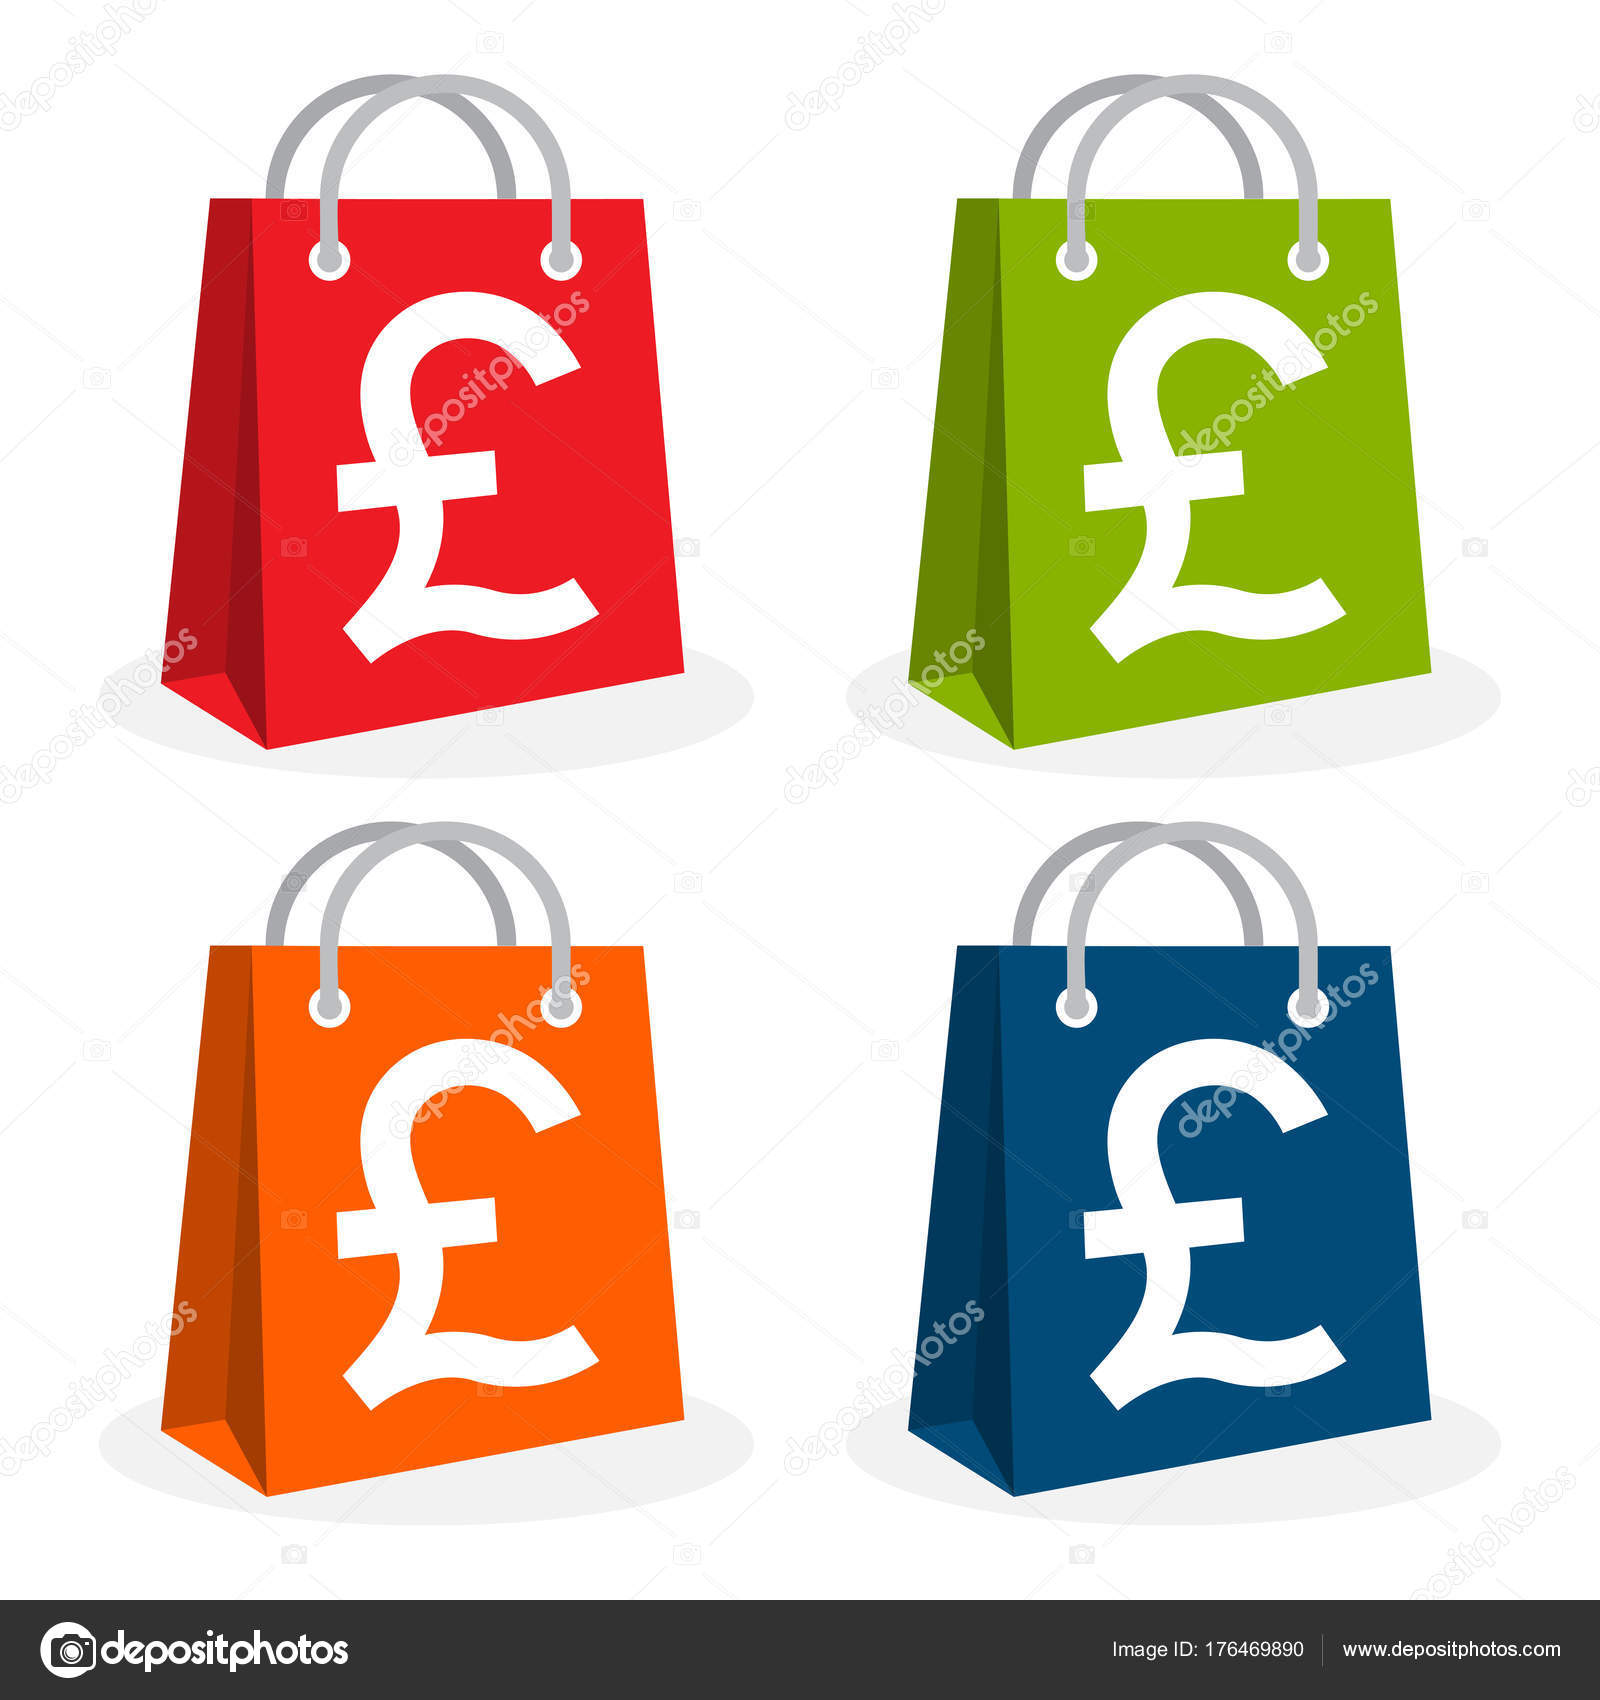 Icon Logo Shopping Business Illustrated Bag Icon Pound Sterling